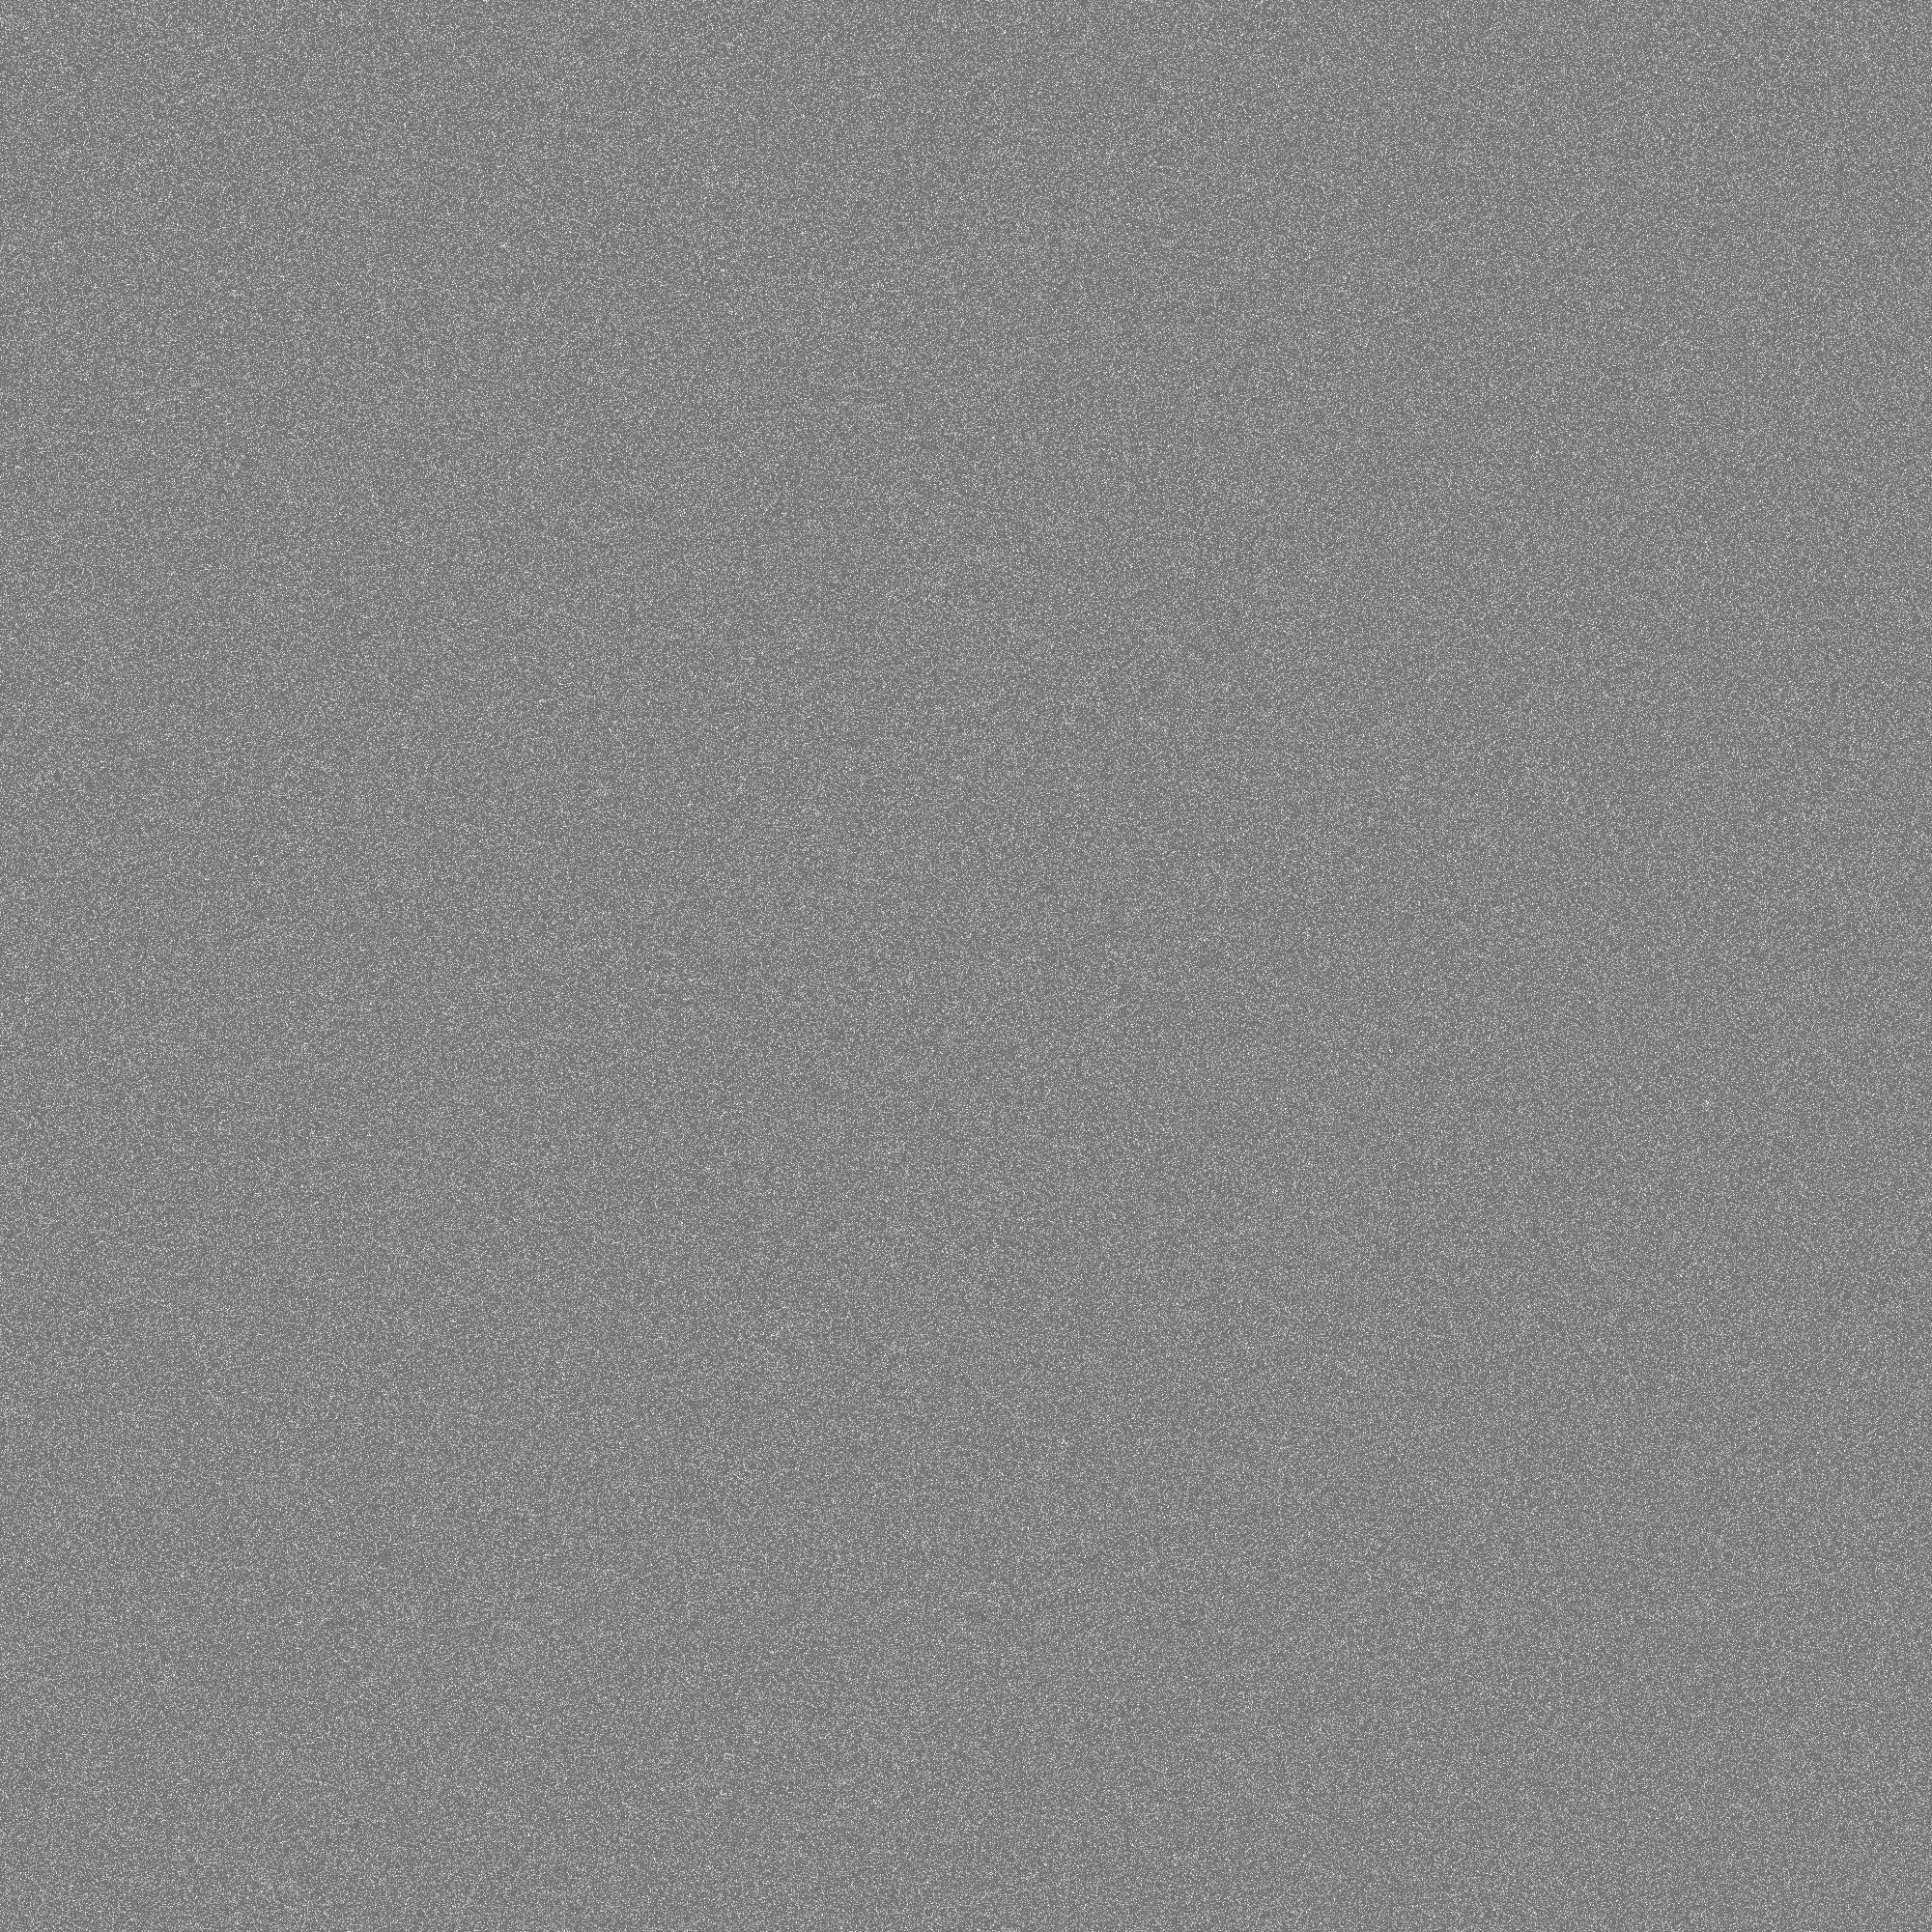 Light Gray background ·① Download free wallpapers for ...